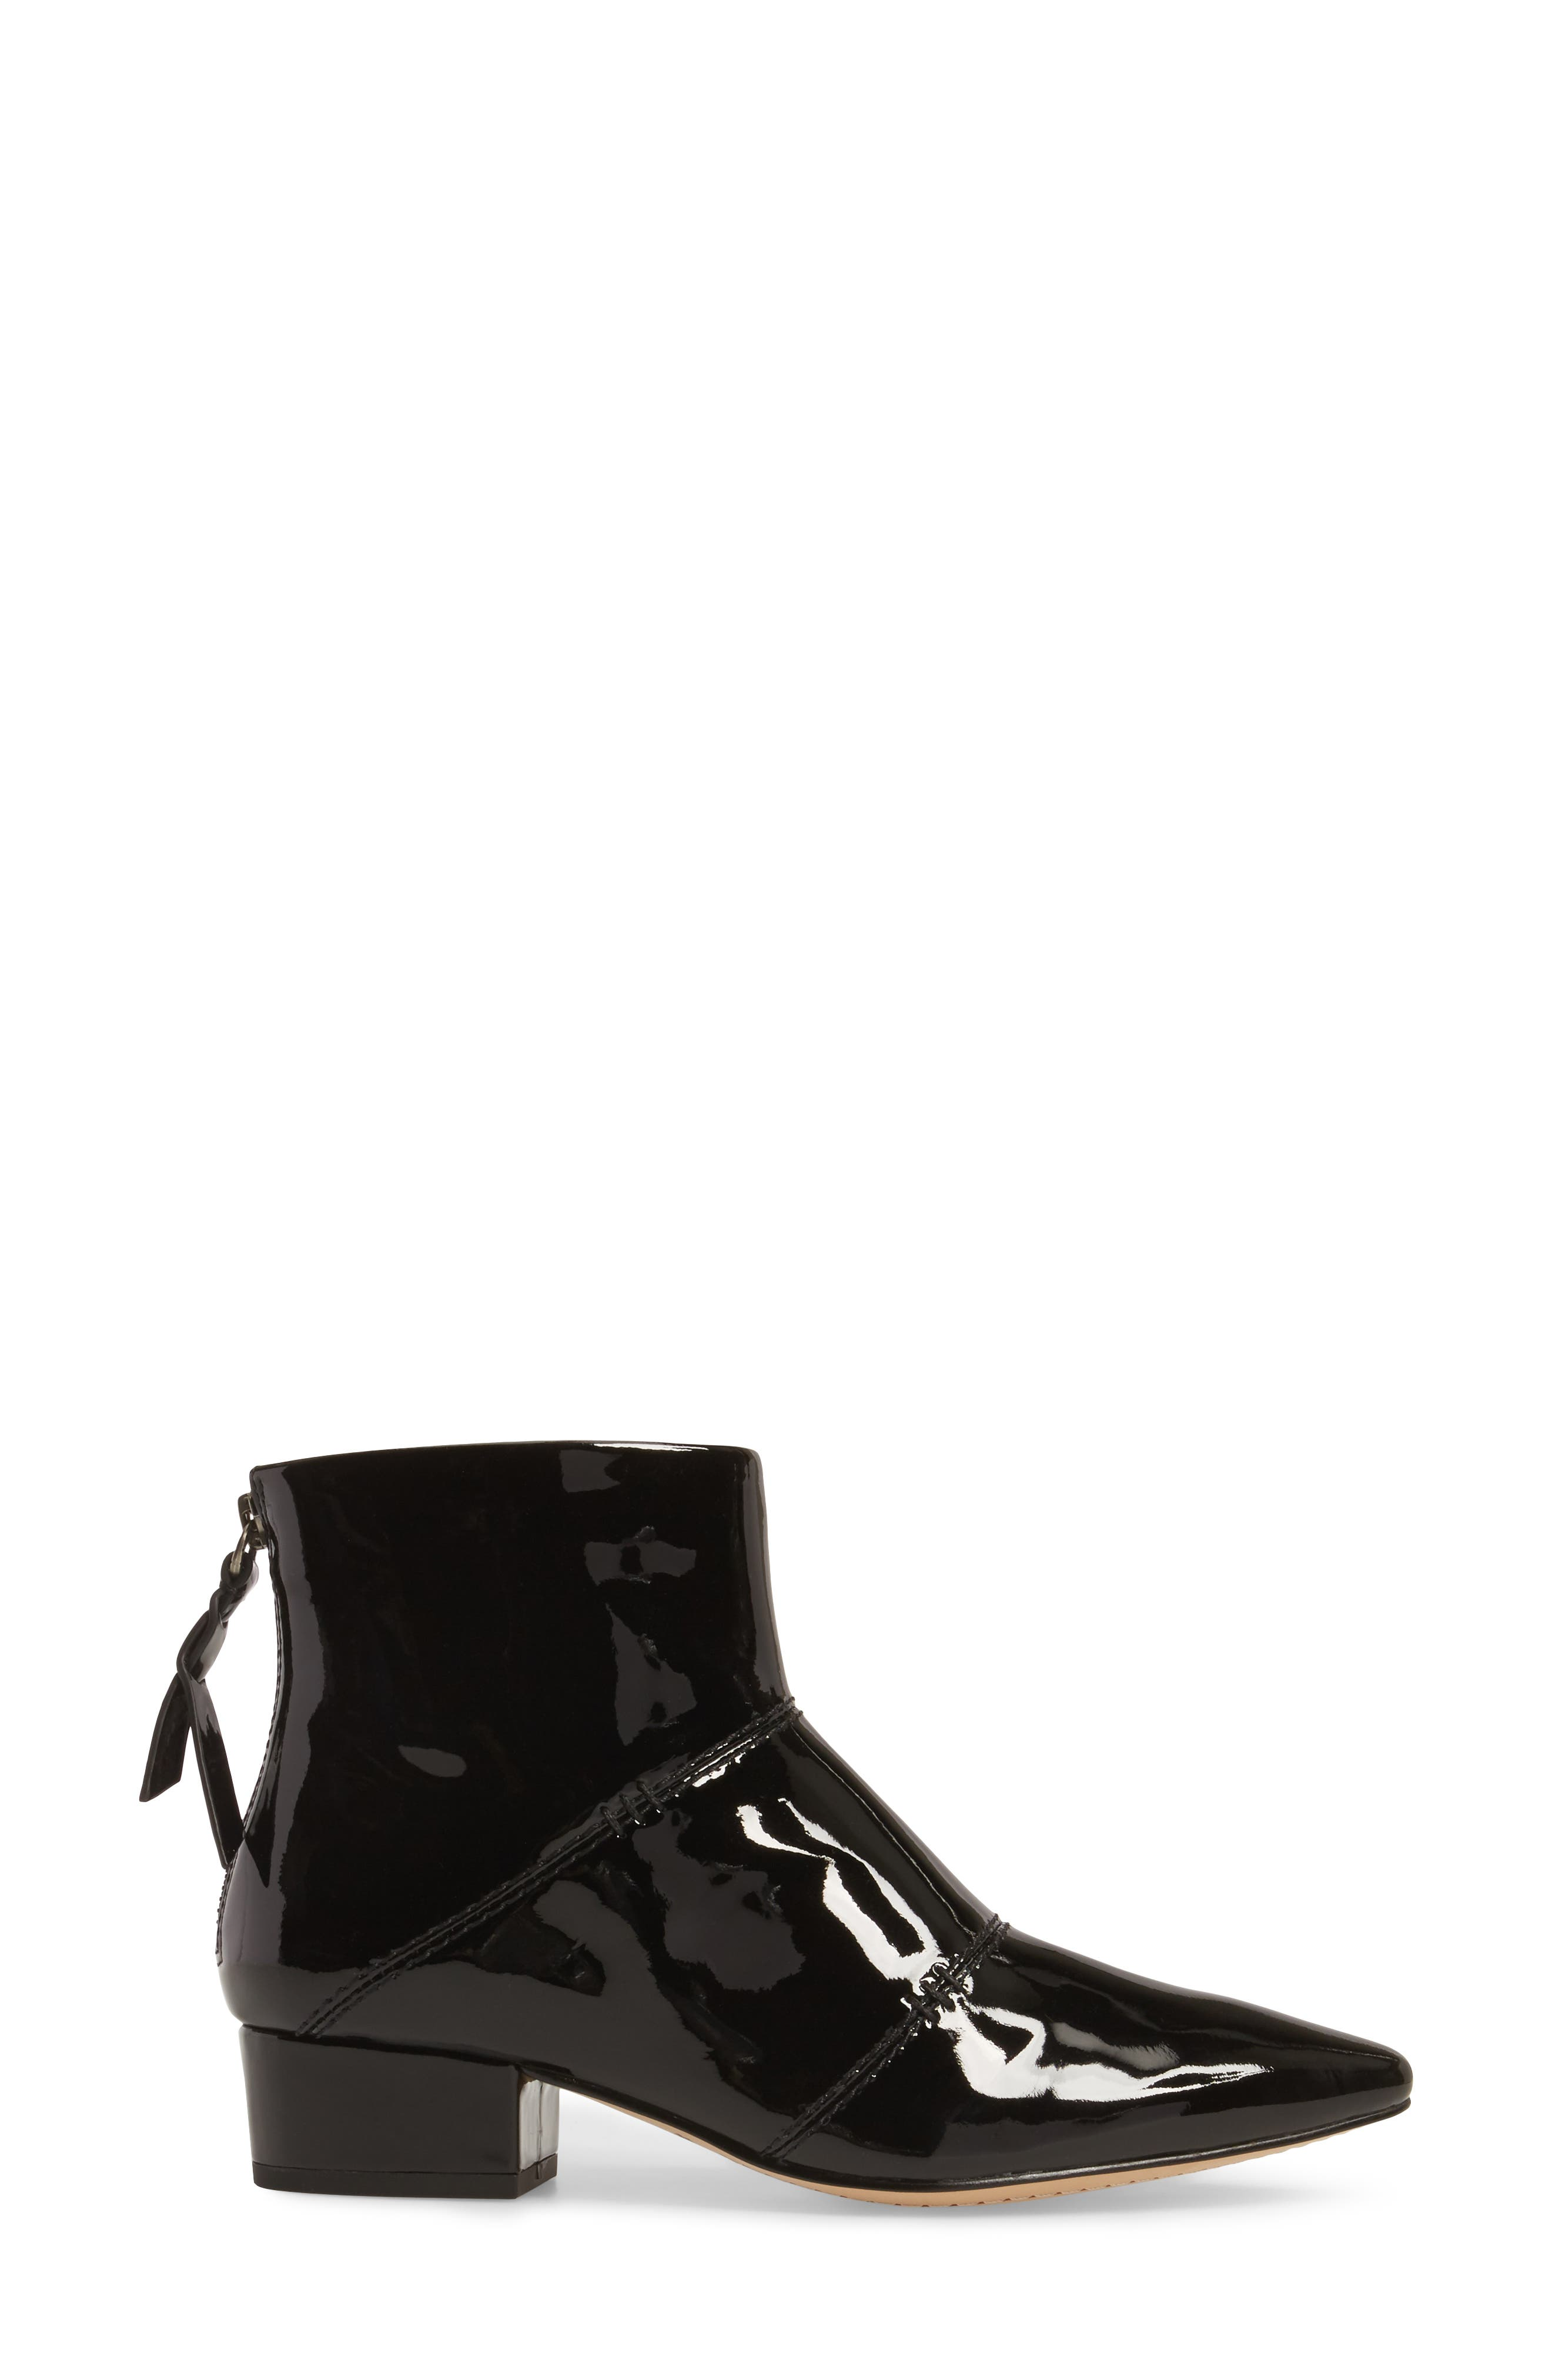 Rina Bootie,                             Alternate thumbnail 3, color,                             Black Patent